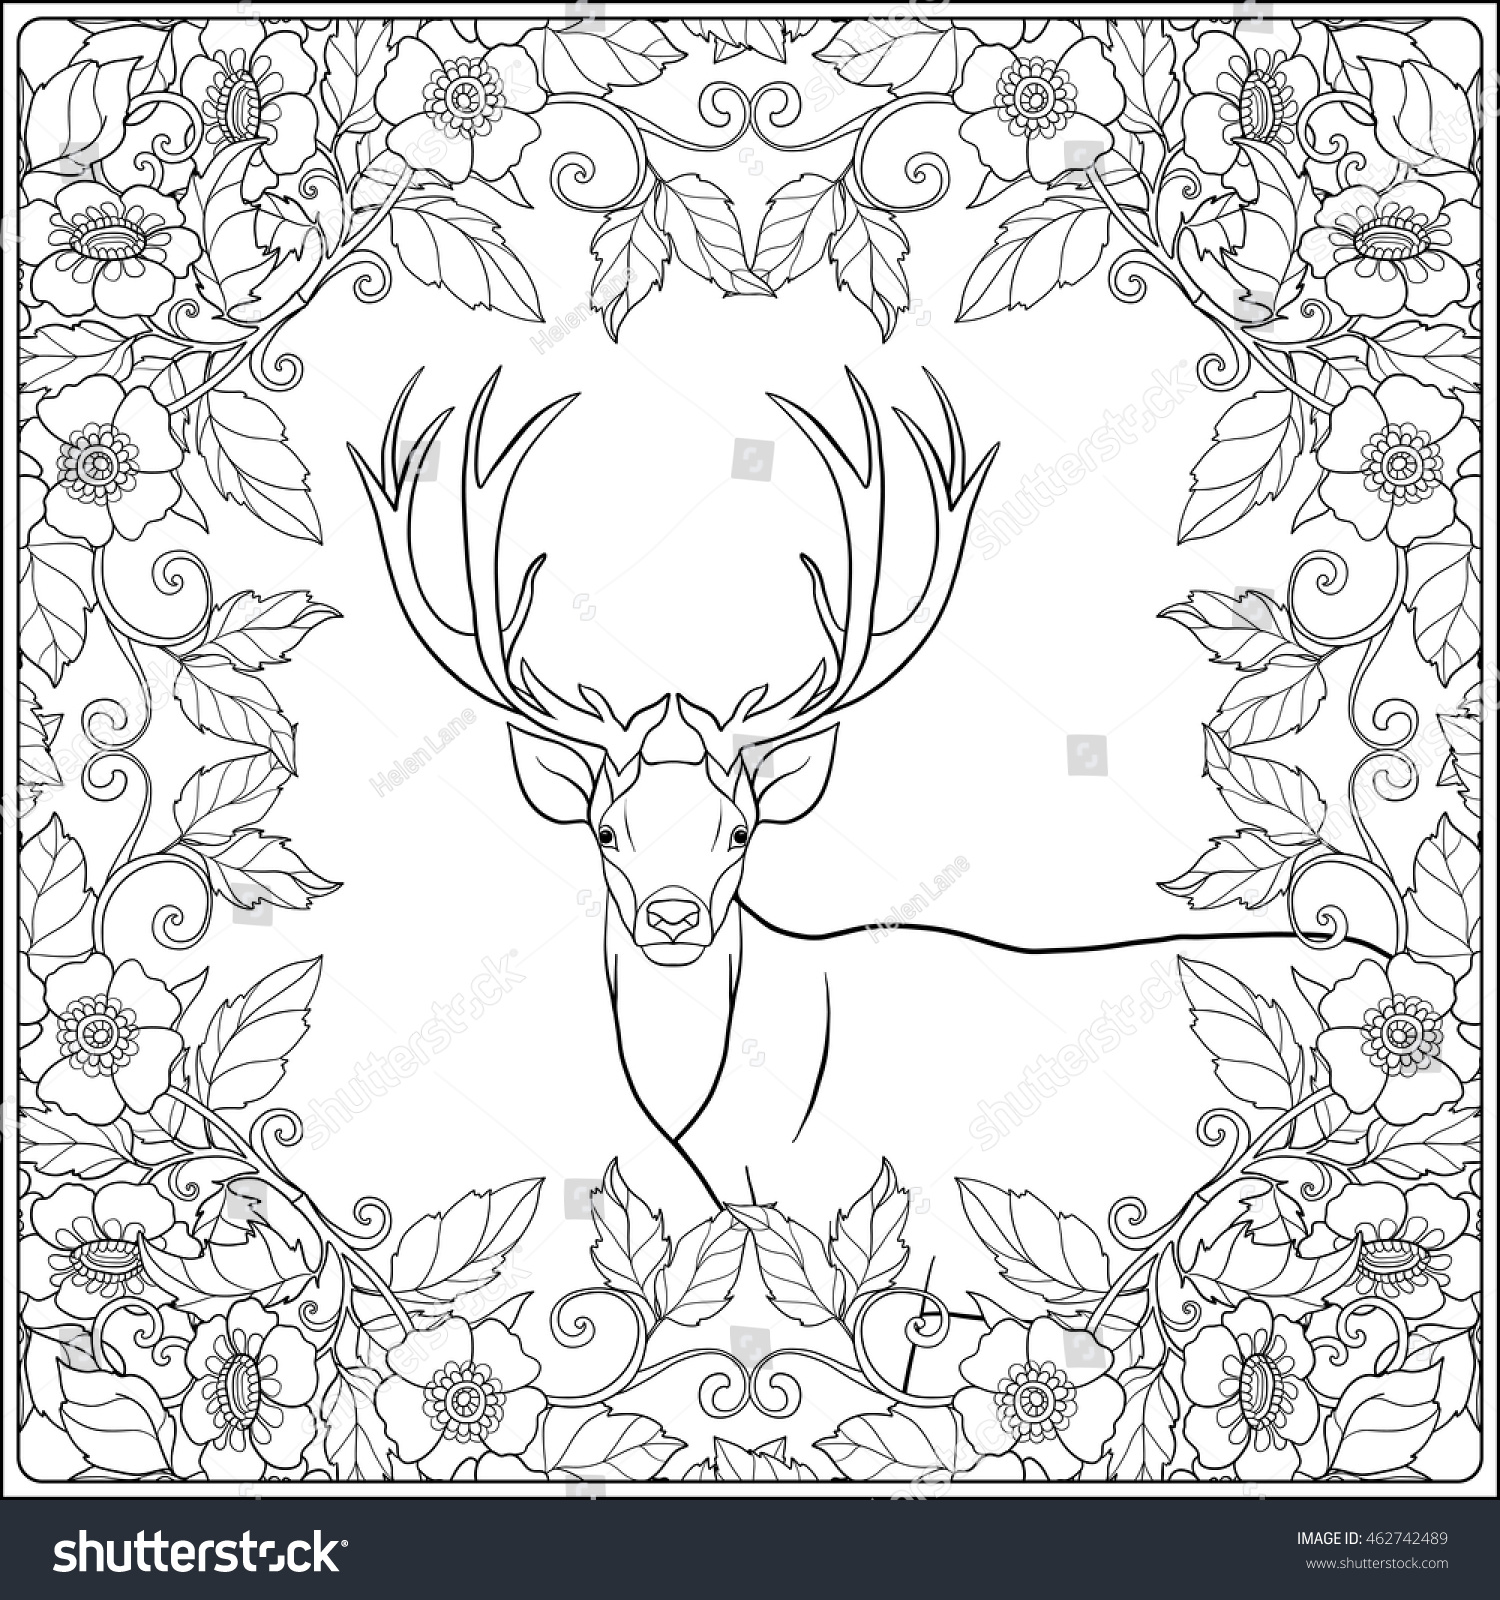 Coloring Page Deer Forest Coloring Book Stock Vector 462742489 ...